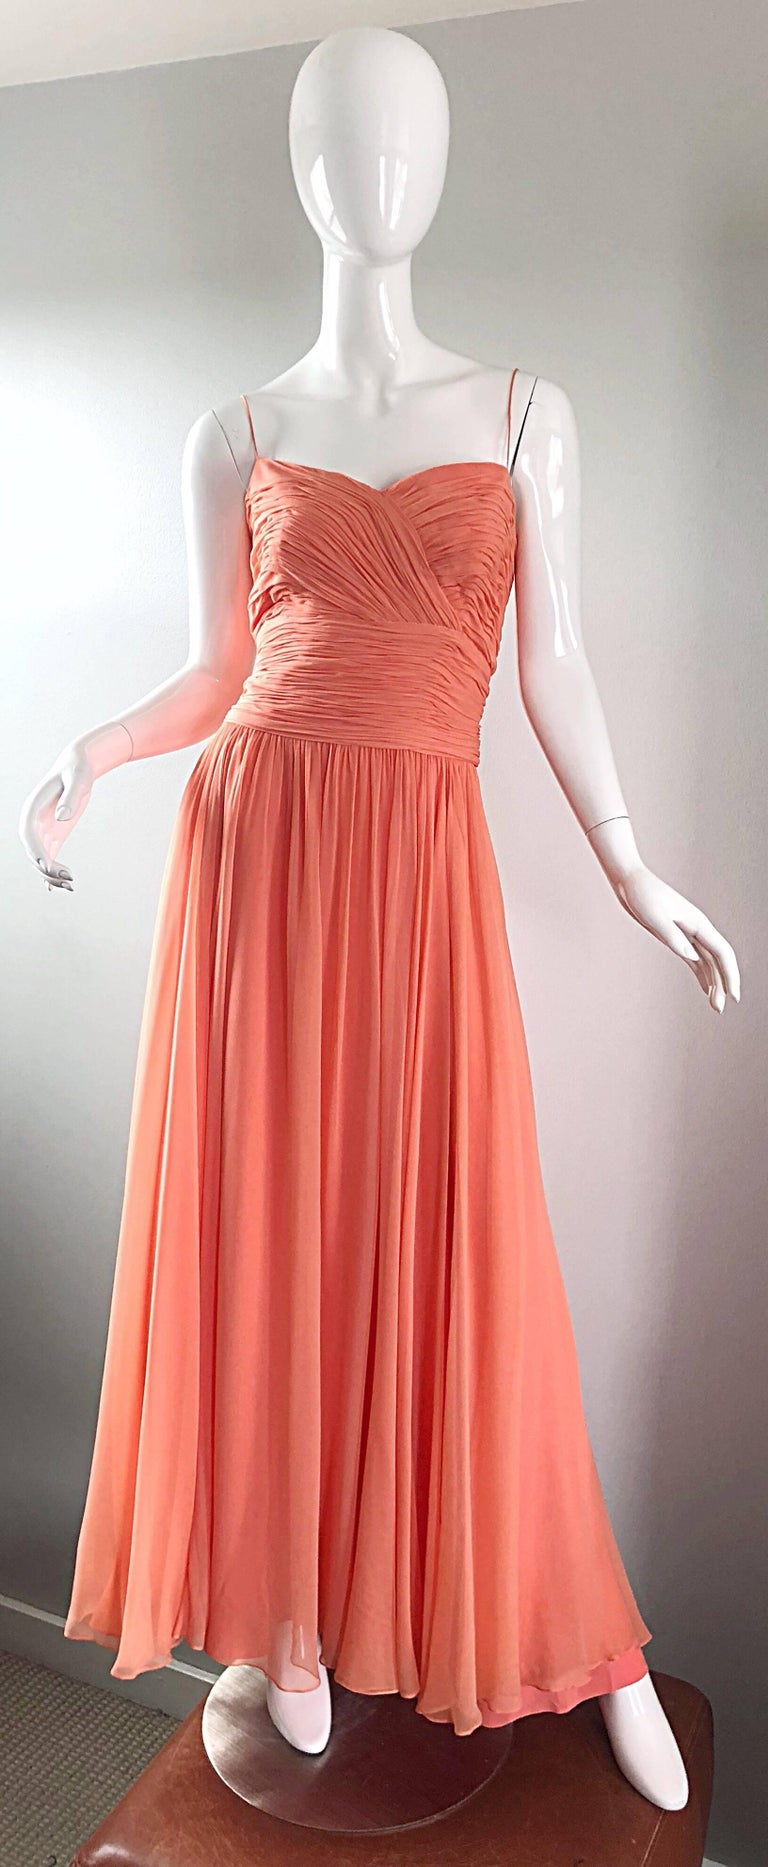 Gorgeous 1950s SAKS 5th AVENUE salmon, coral pink silk chiffon demi couture gown! Words cannot even begin to describe the quality, construction, color and design of this masterpiece! Flattering ruched bodice with thin spaghetti straps. Layers and